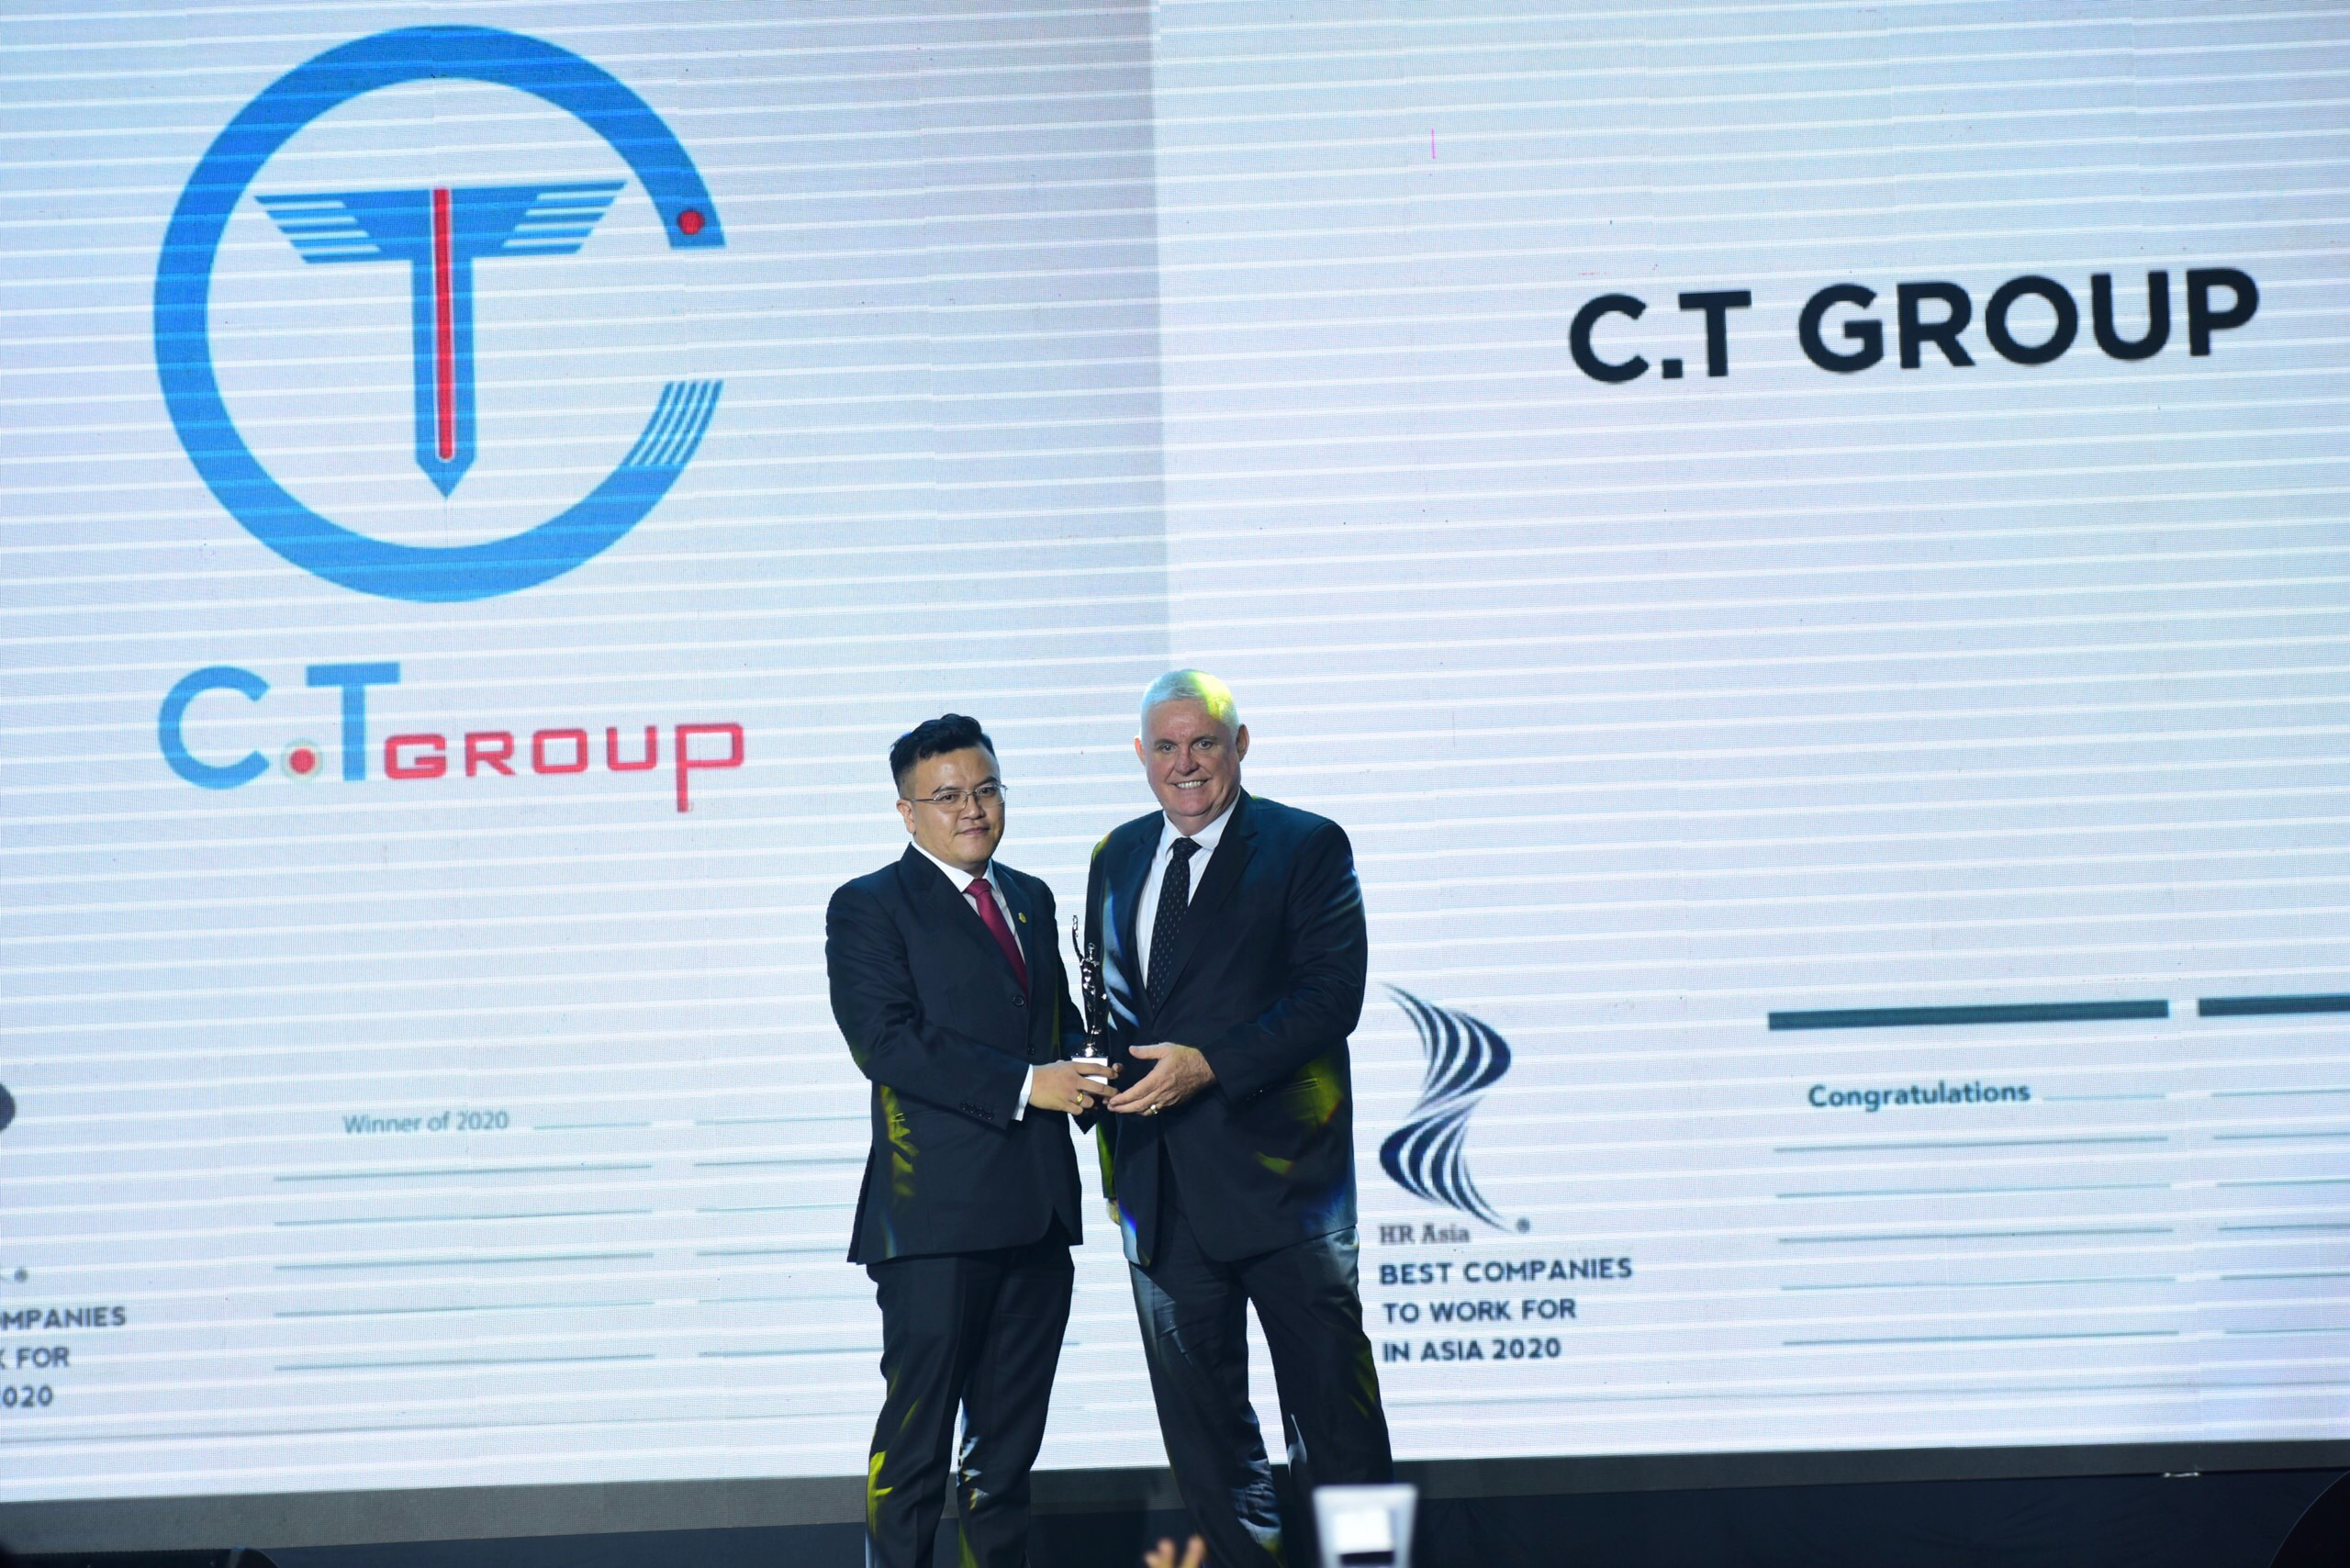 C.T Group receives 'Best Companies to Work For in Asia' award